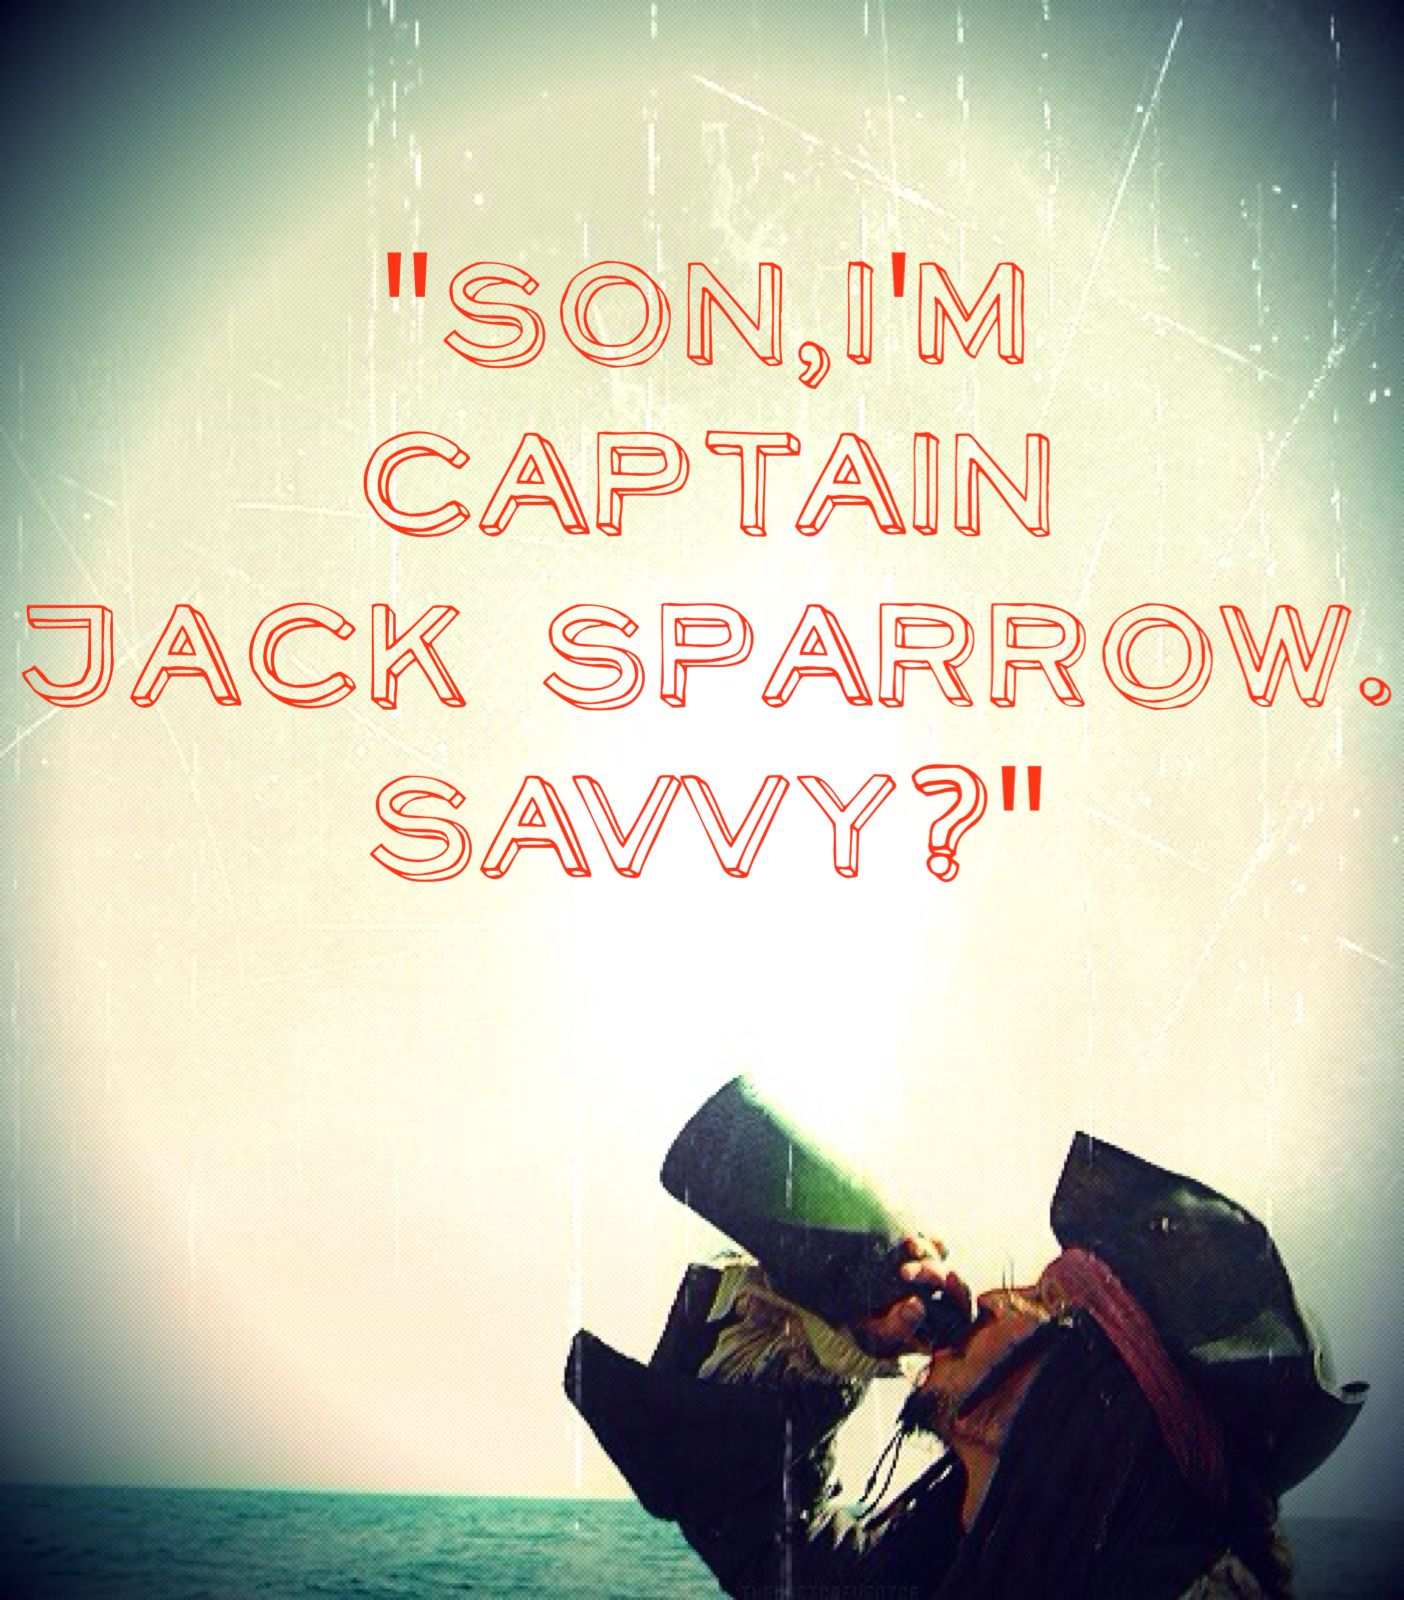 SAVVY? by Heather Sondreal This is one of my first POTC edits! Feedback is appreciated! Thanks! --- Heather S.